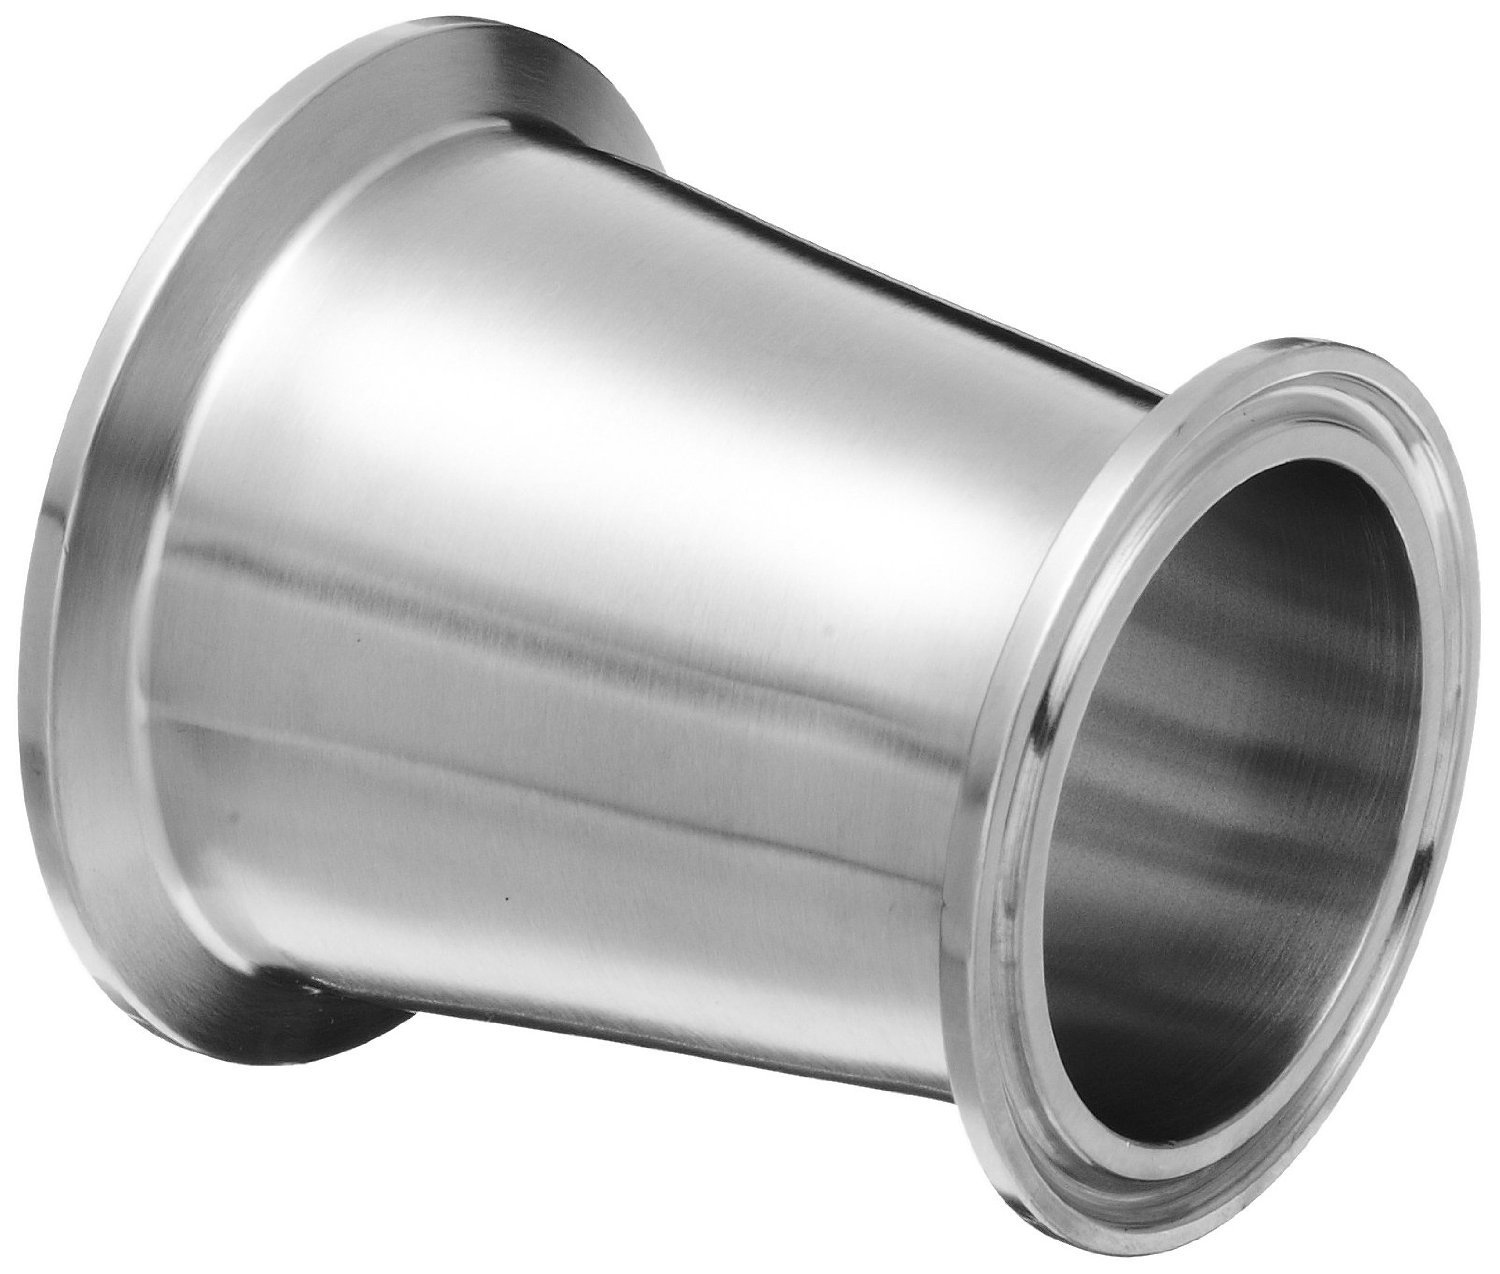 Dixon B3114MP-G250200 Stainless Steel 304 Sanitary Fitting, Clamp Concentric Red Fiberglassucer, 2-1/2'' Tube OD x 2'' Tube OD